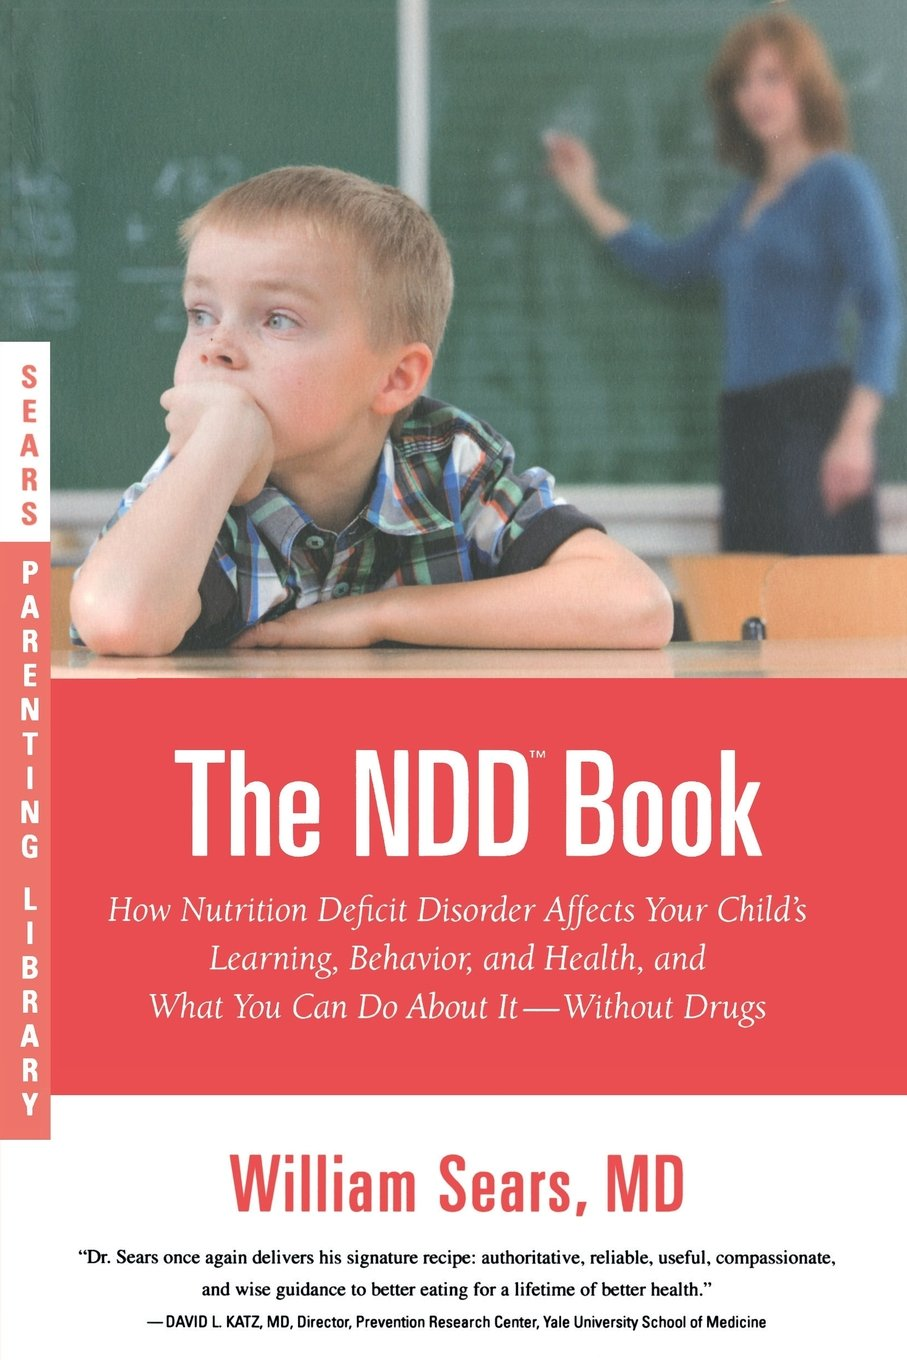 Download The N.D.D. Book: How Nutrition Deficit Disorder Affects Your Child's Learning, Behavior, and Health, and What You Can Do About It--Without Drugs (Sears Parenting Library) ebook